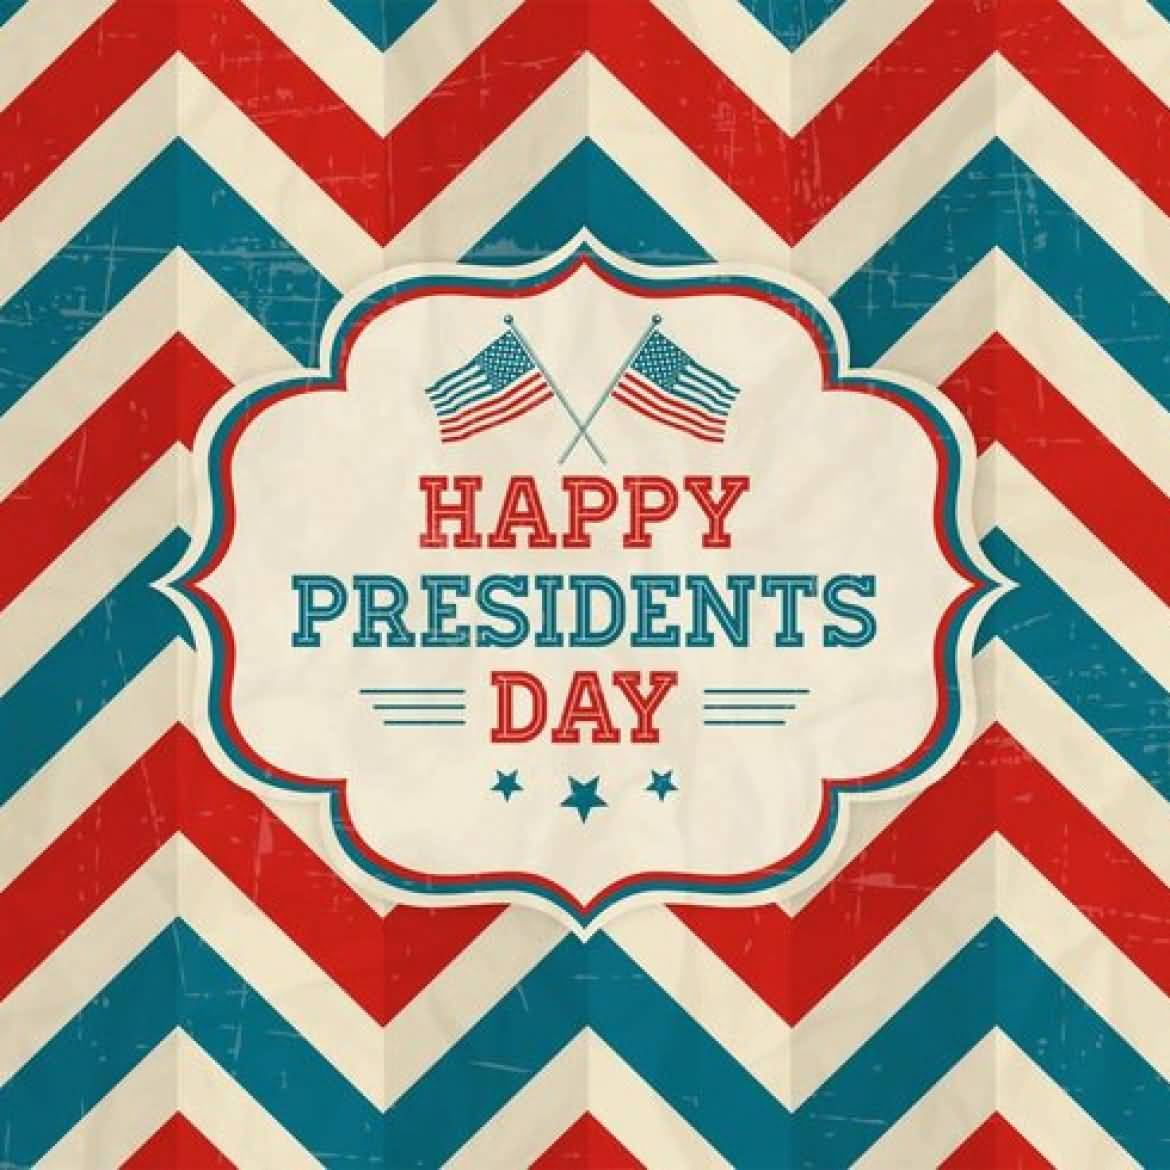 60 most beautiful presidents day greeting pictures Fireworks Animation for PowerPoint animated fireworks clipart for powerpoint